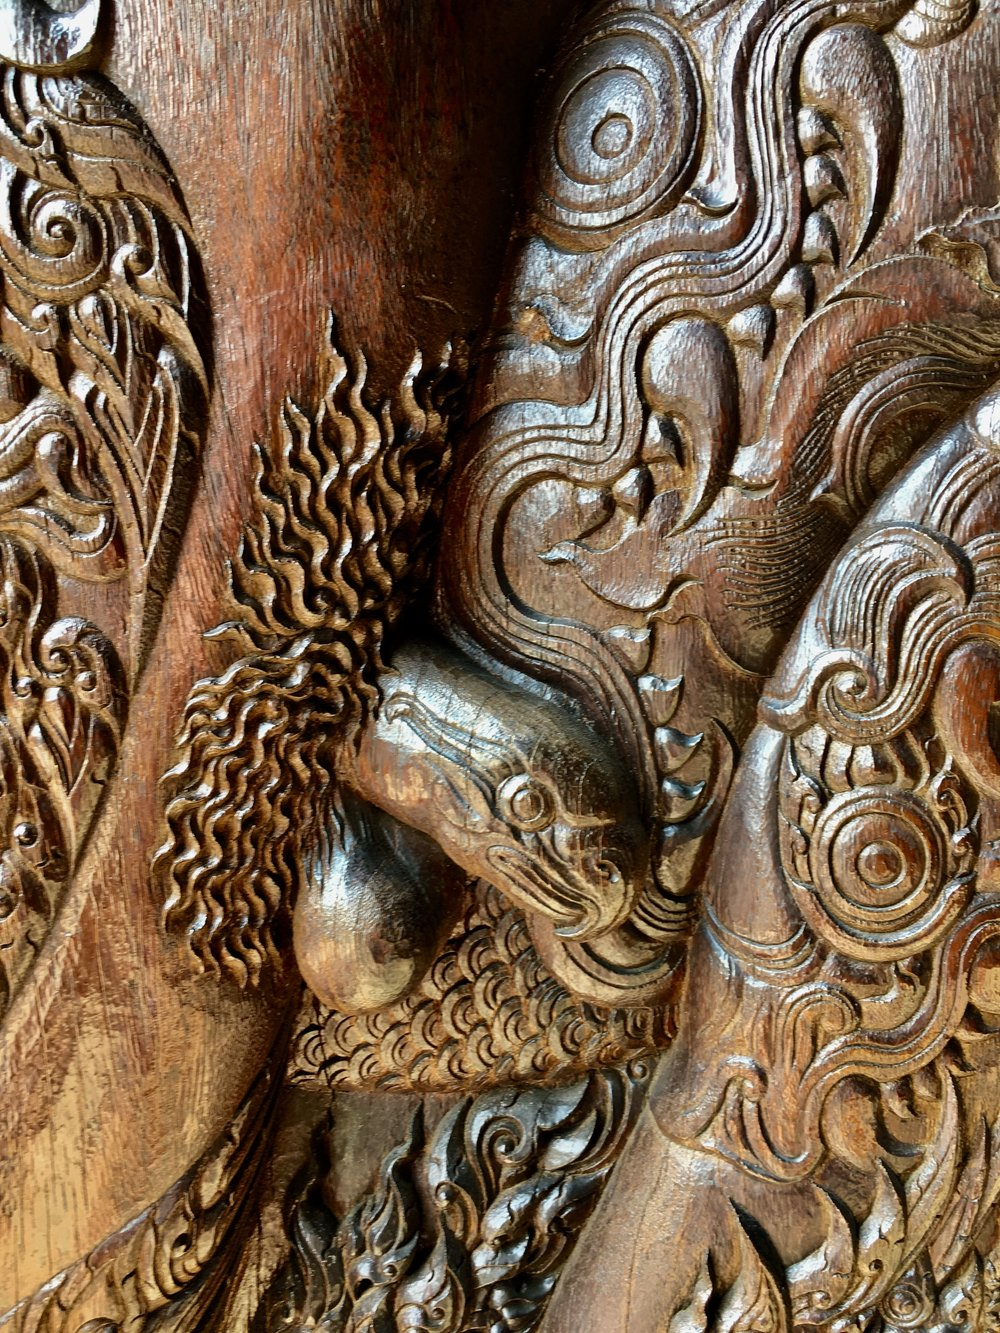 The doors to the main building have intricate carvings of demons with animal-headed penises like the eagle seen here